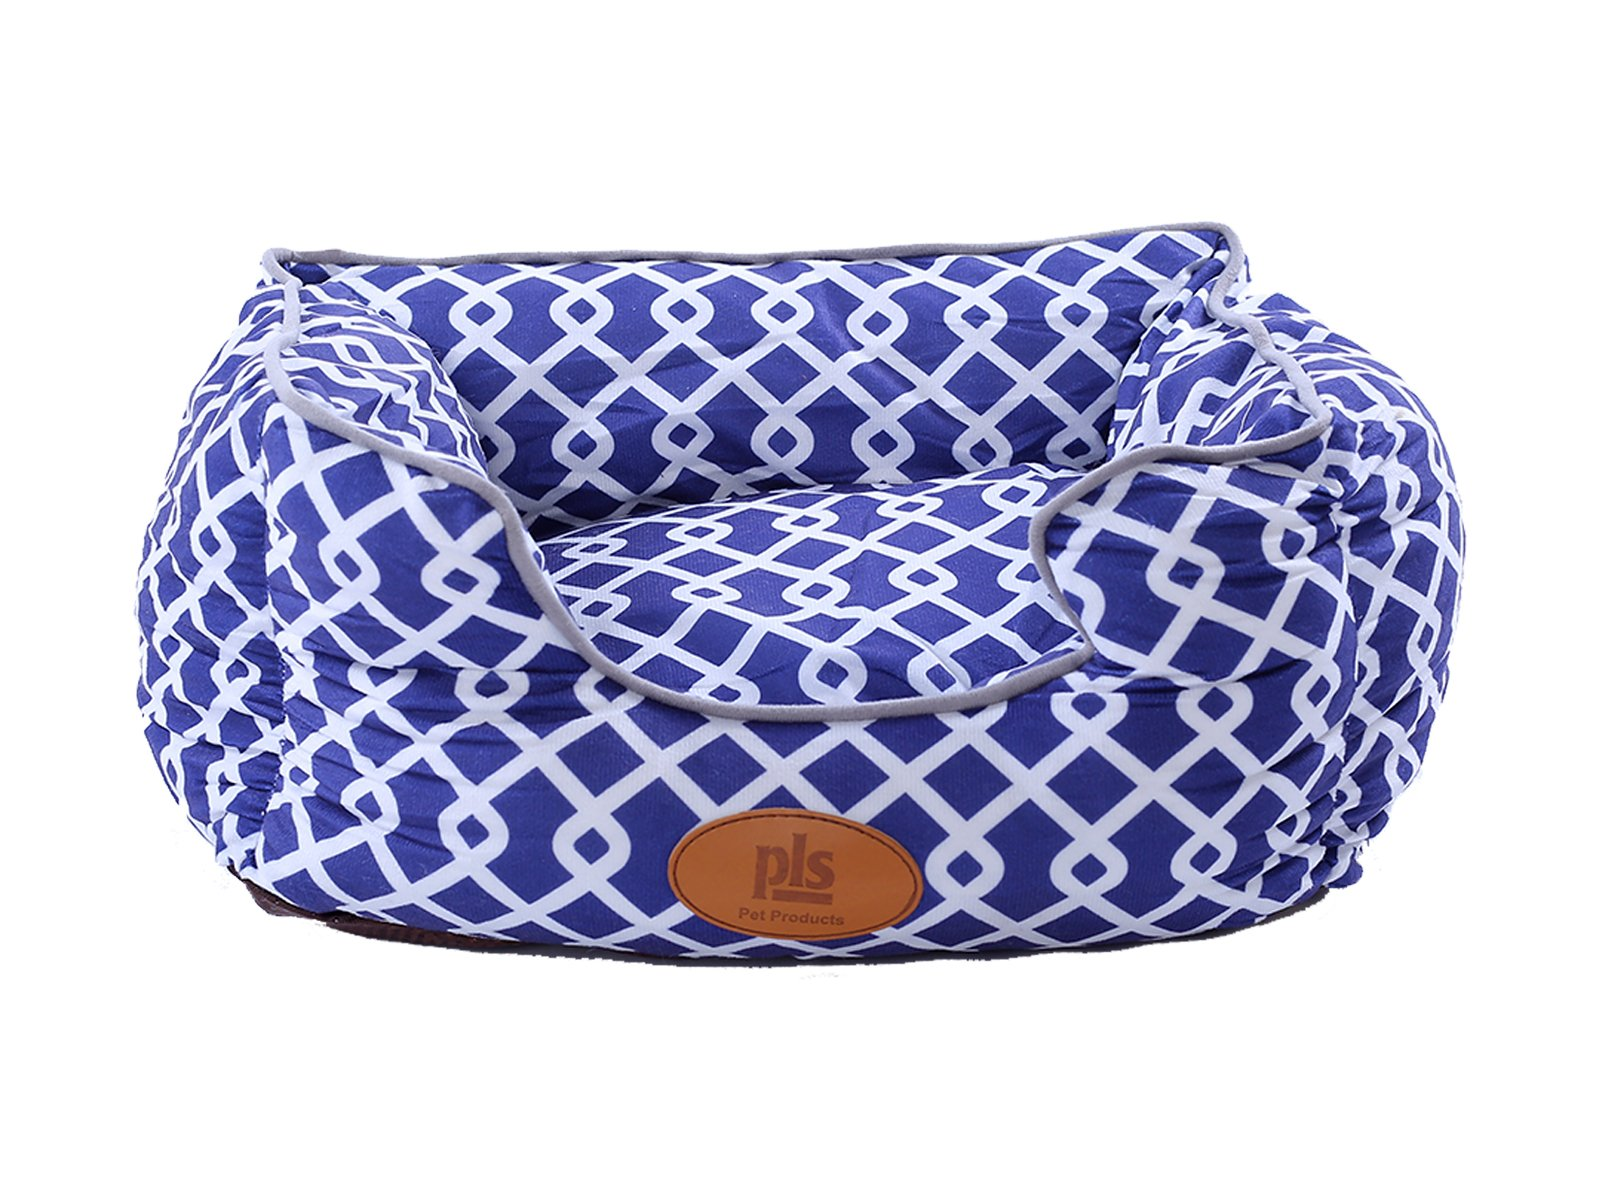 [NEW] PLS Birdsong Trellis Bolster Extra Small Dog Bed, Pet Bed, Cat Bed, Blue & Gray, Extra Small, Removable Cover, Completely Washable, Dog beds for extra small dogs